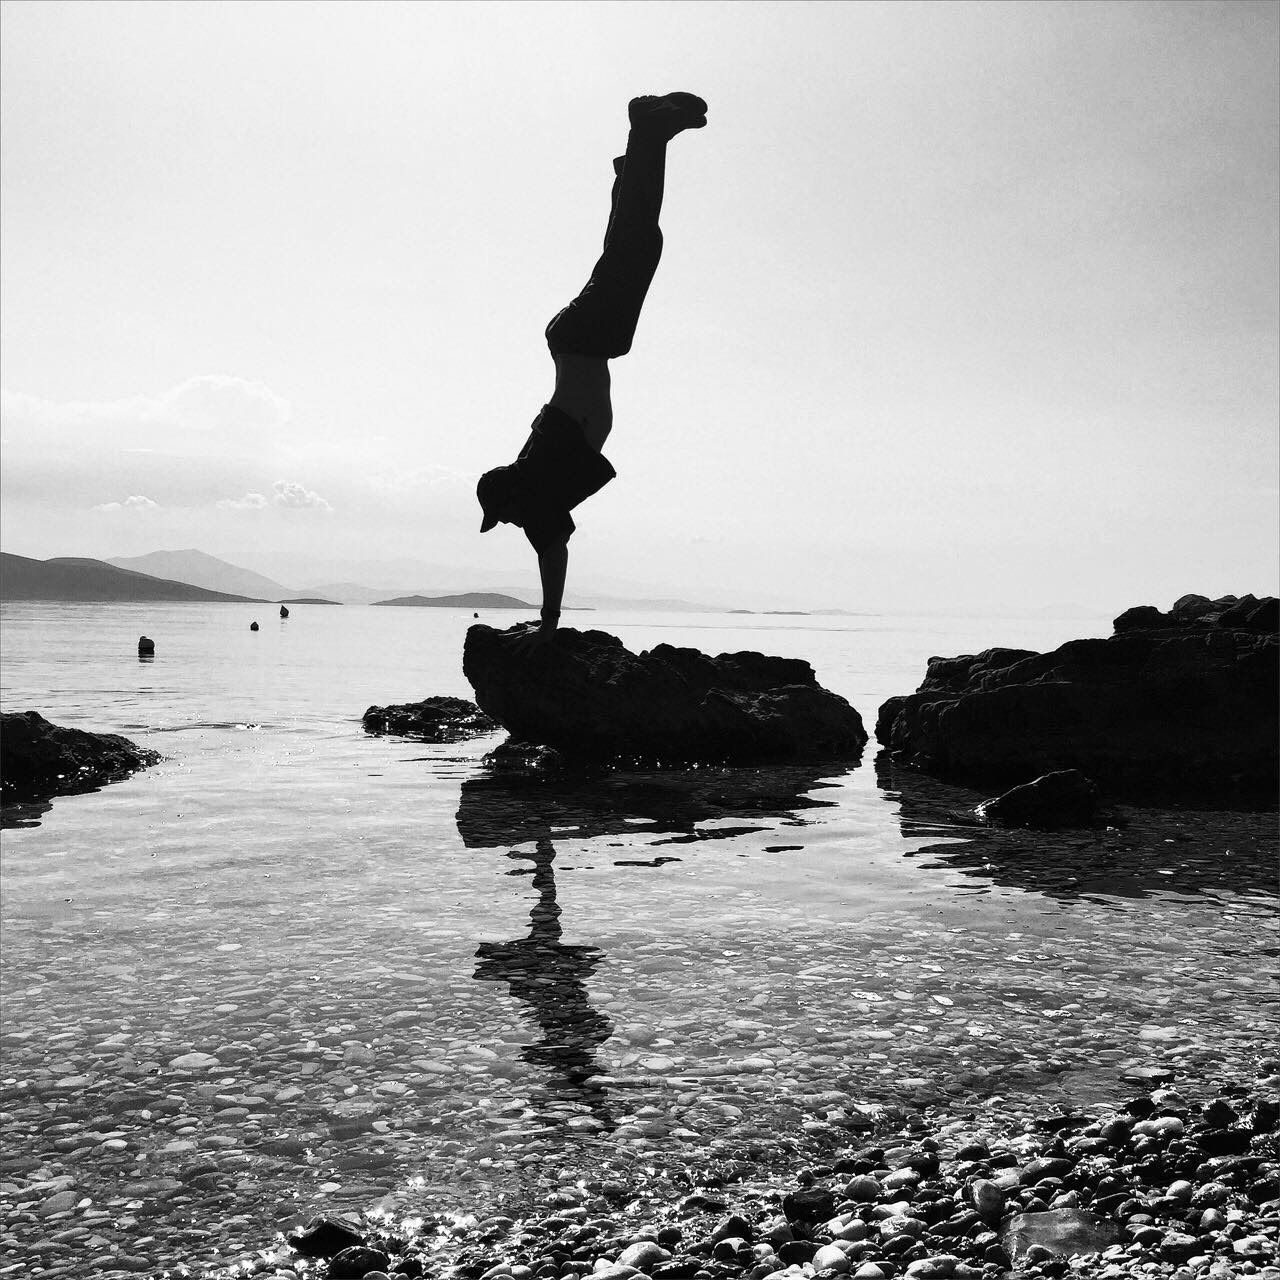 skill, full length, flexibility, balance, water, exercising, day, vitality, outdoors, concentration, upside down, sea, real people, lifestyles, one person, handstand, performance, legs apart, women, young women, nature, young adult, sky, people